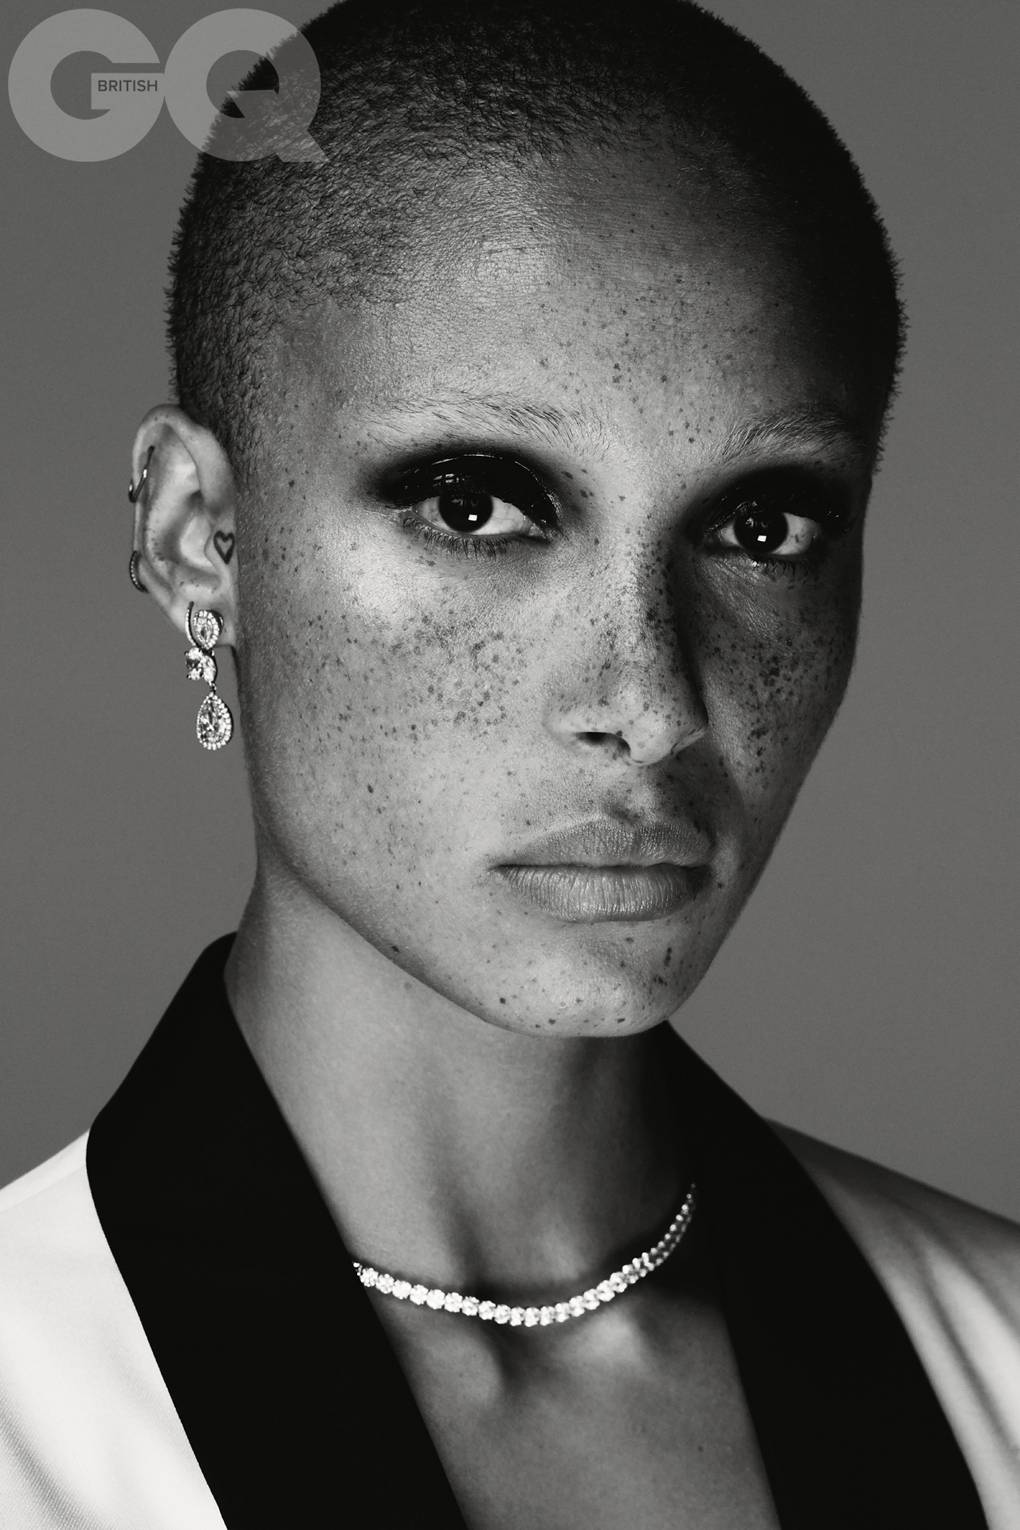 Pictures Adwoa Aboah nudes (89 images), Leaked